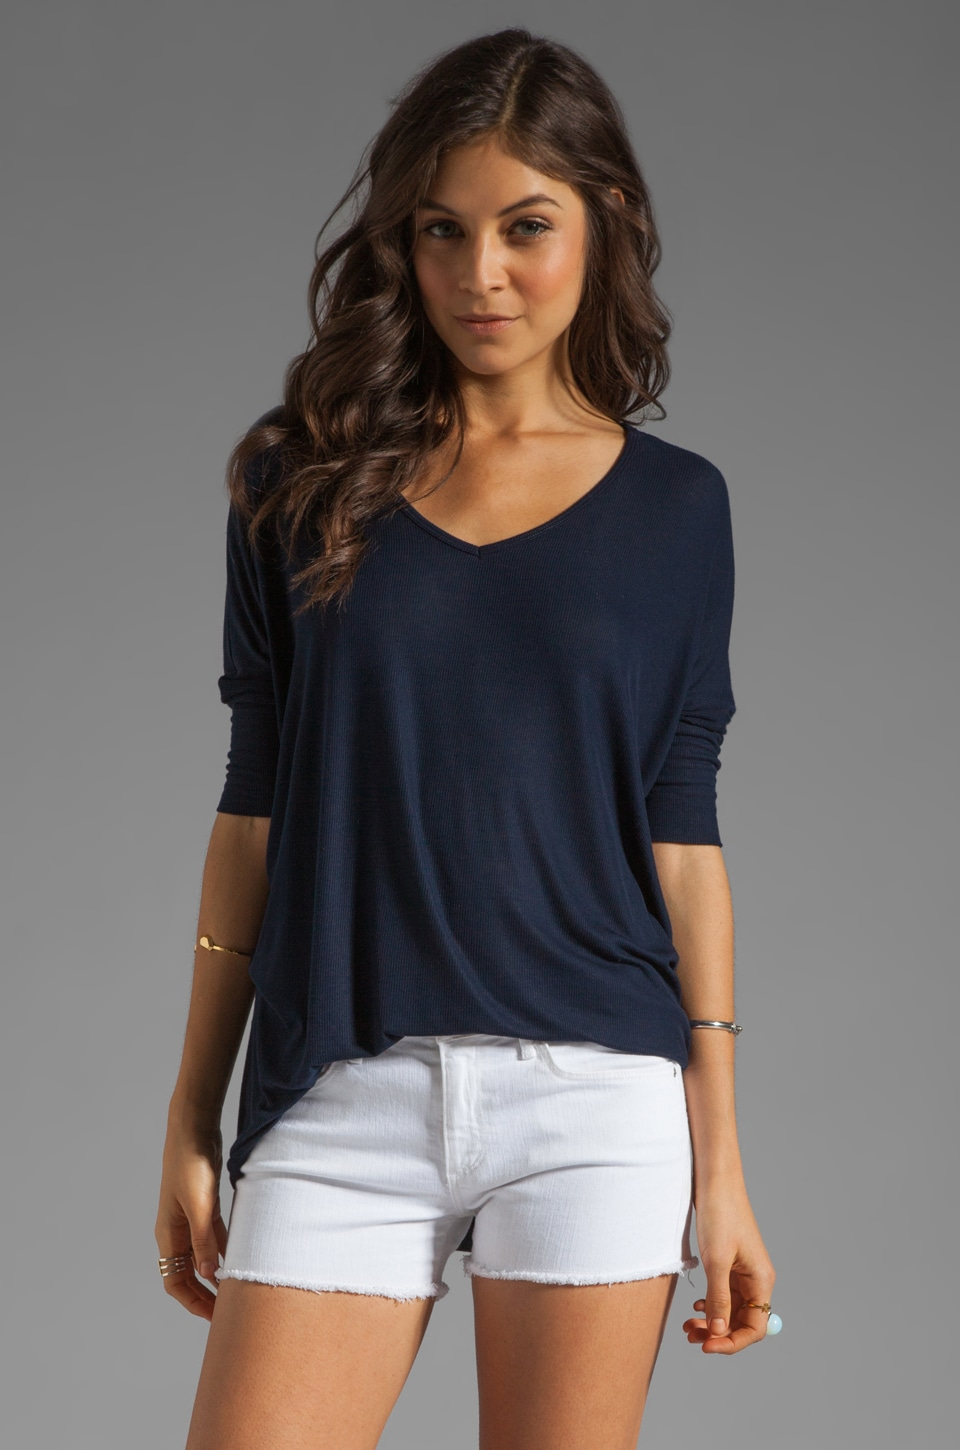 Michael Lauren Dylan 3/4 Sleeve Draped Tee in Navy